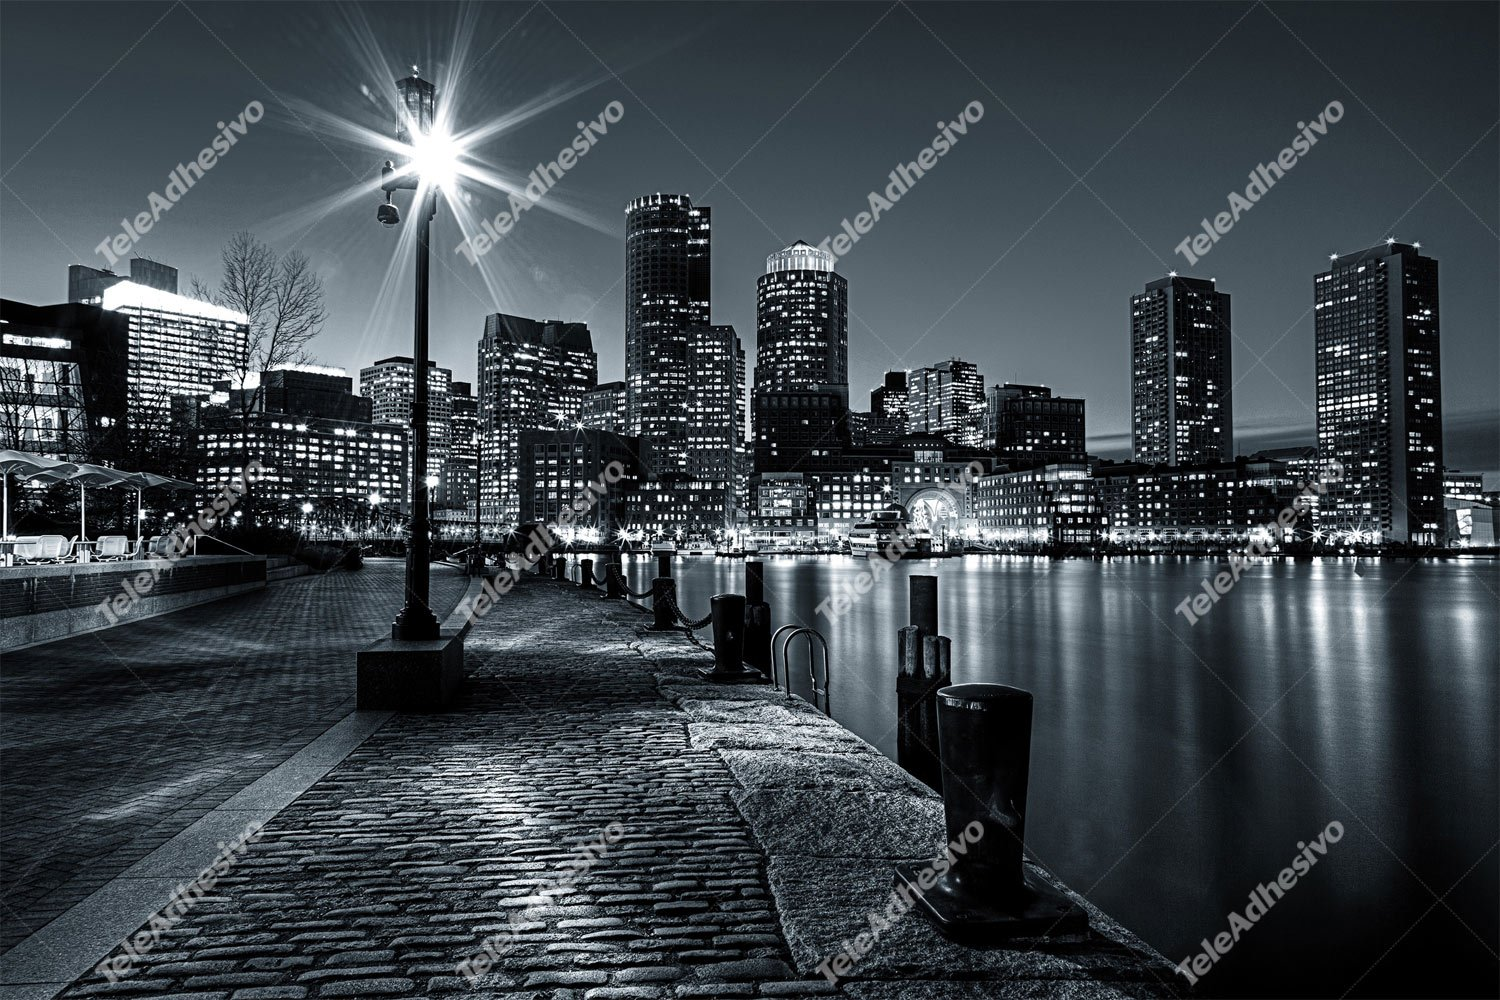 Fotomurales: Boston nocturno